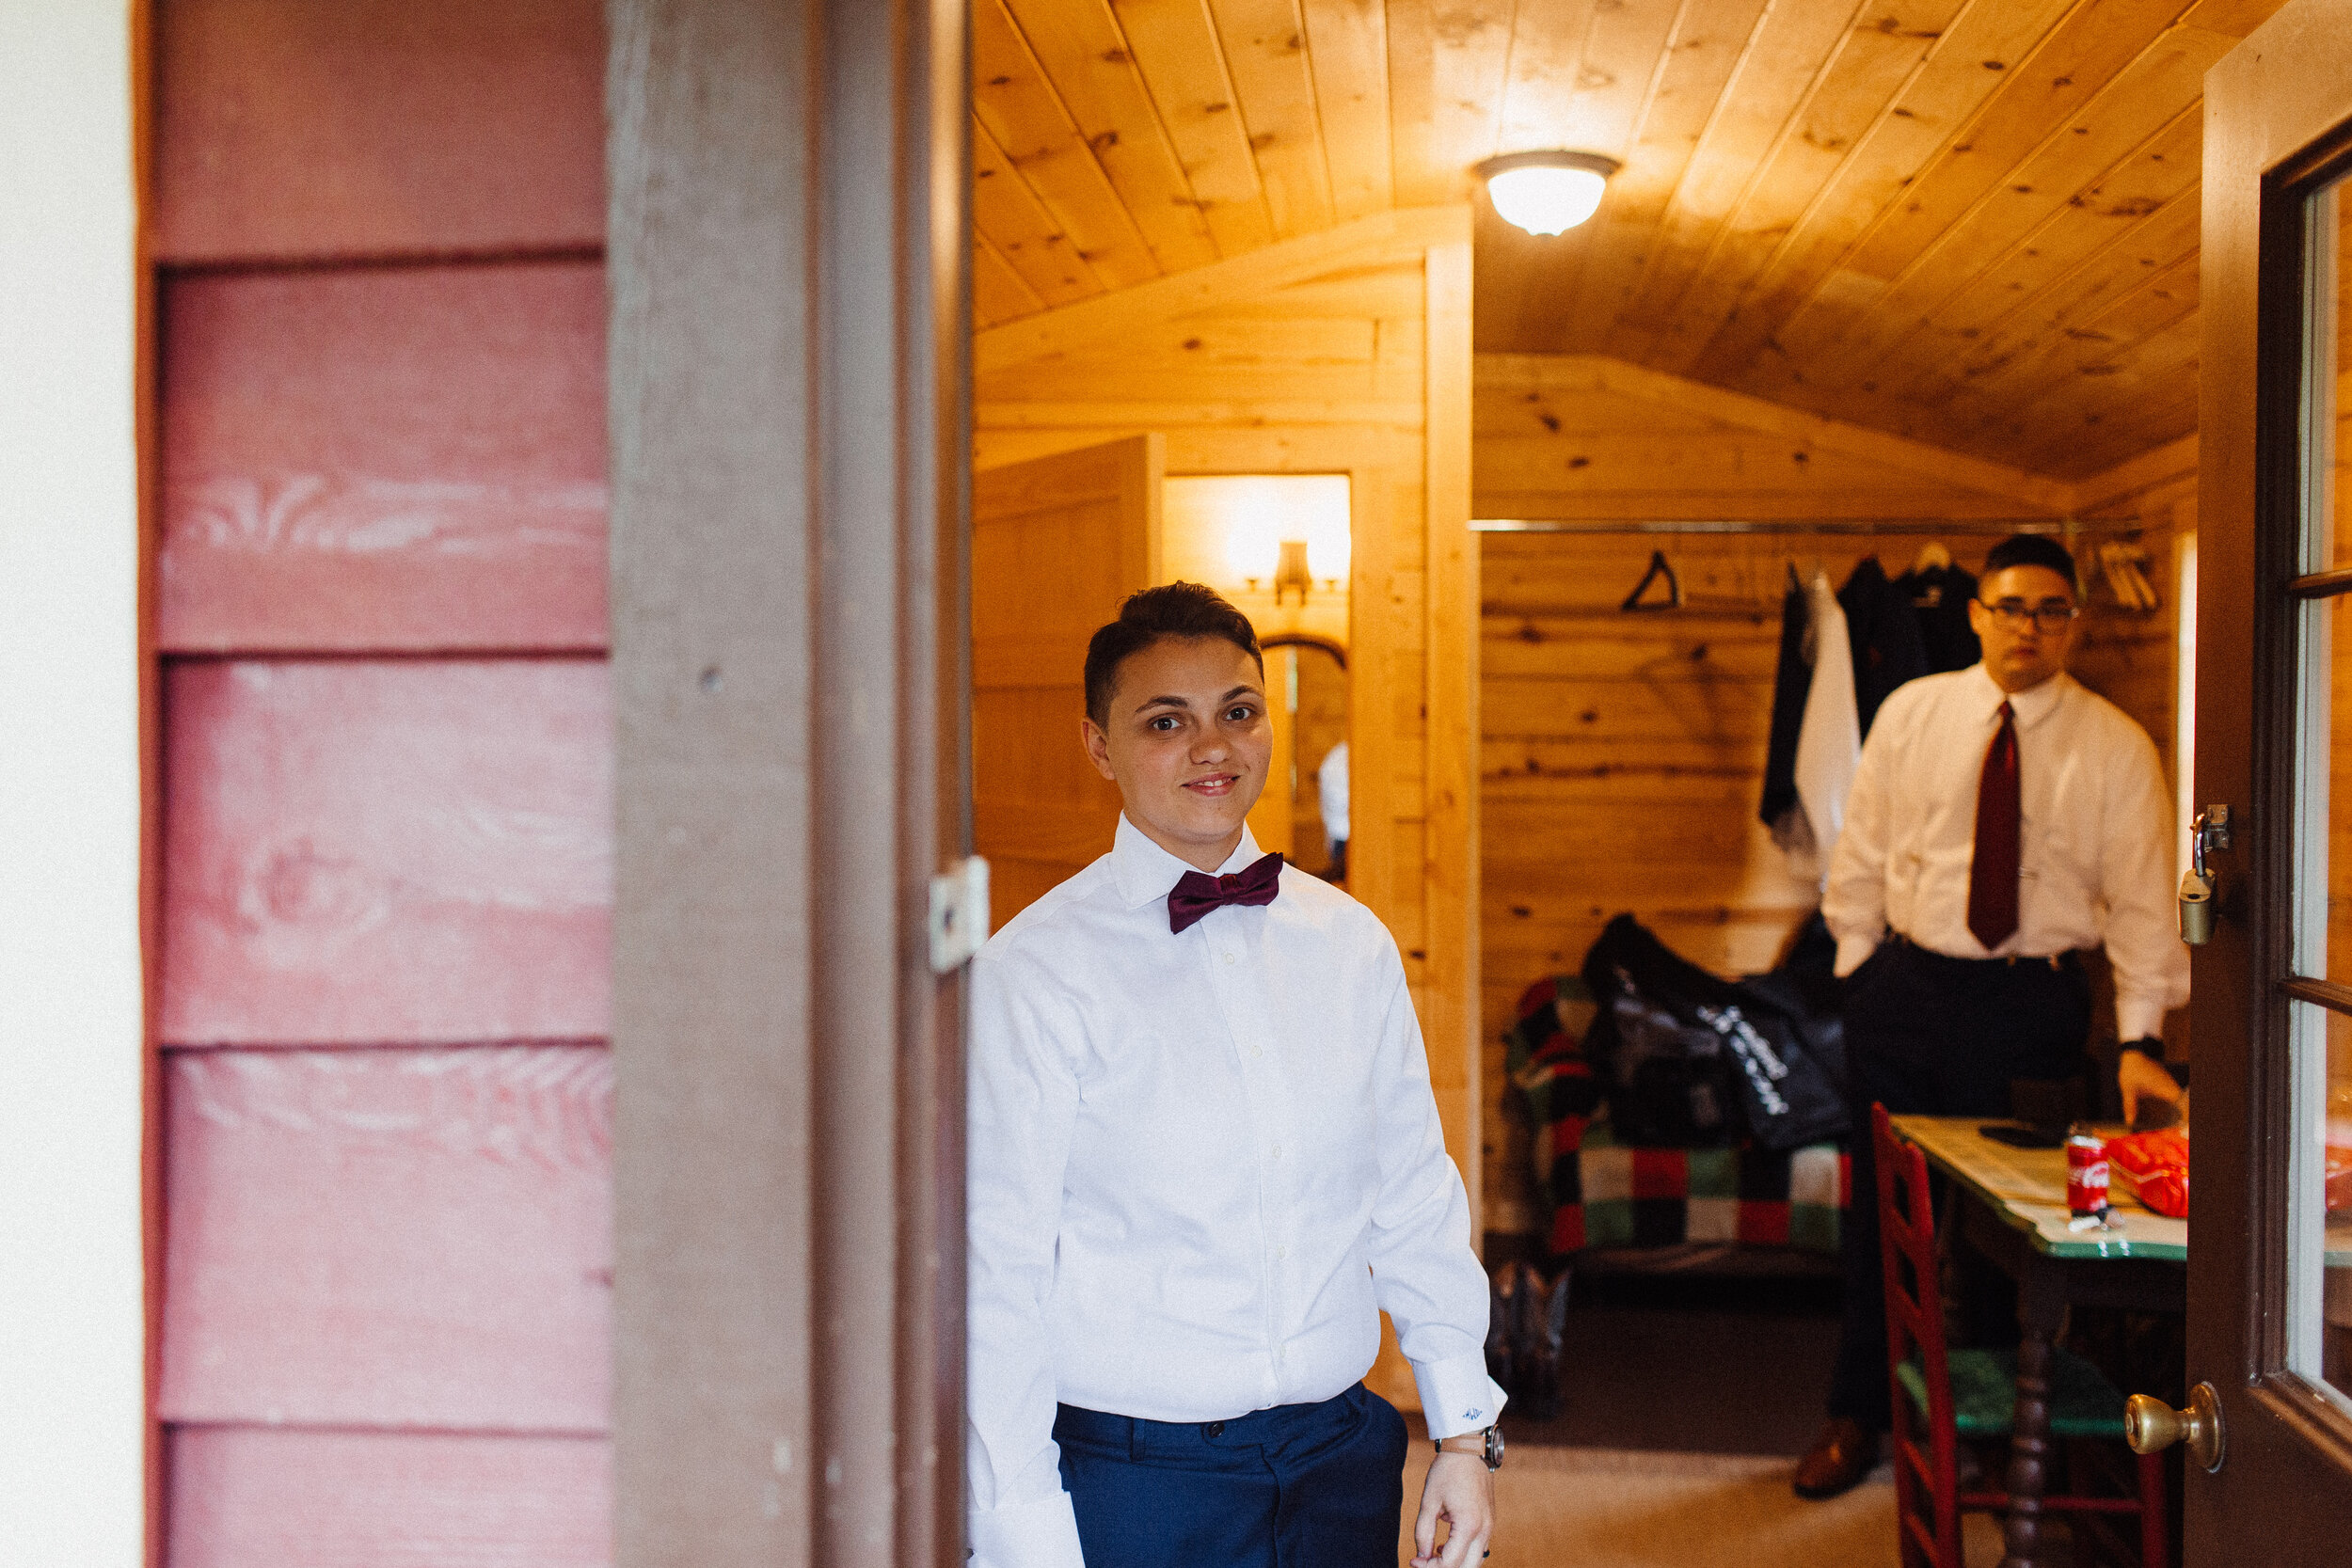 atlanta_wedding_photographers_georgia_same_sex_rustic_barn_farm_lesbian_weddings_inclusive_1256.jpg